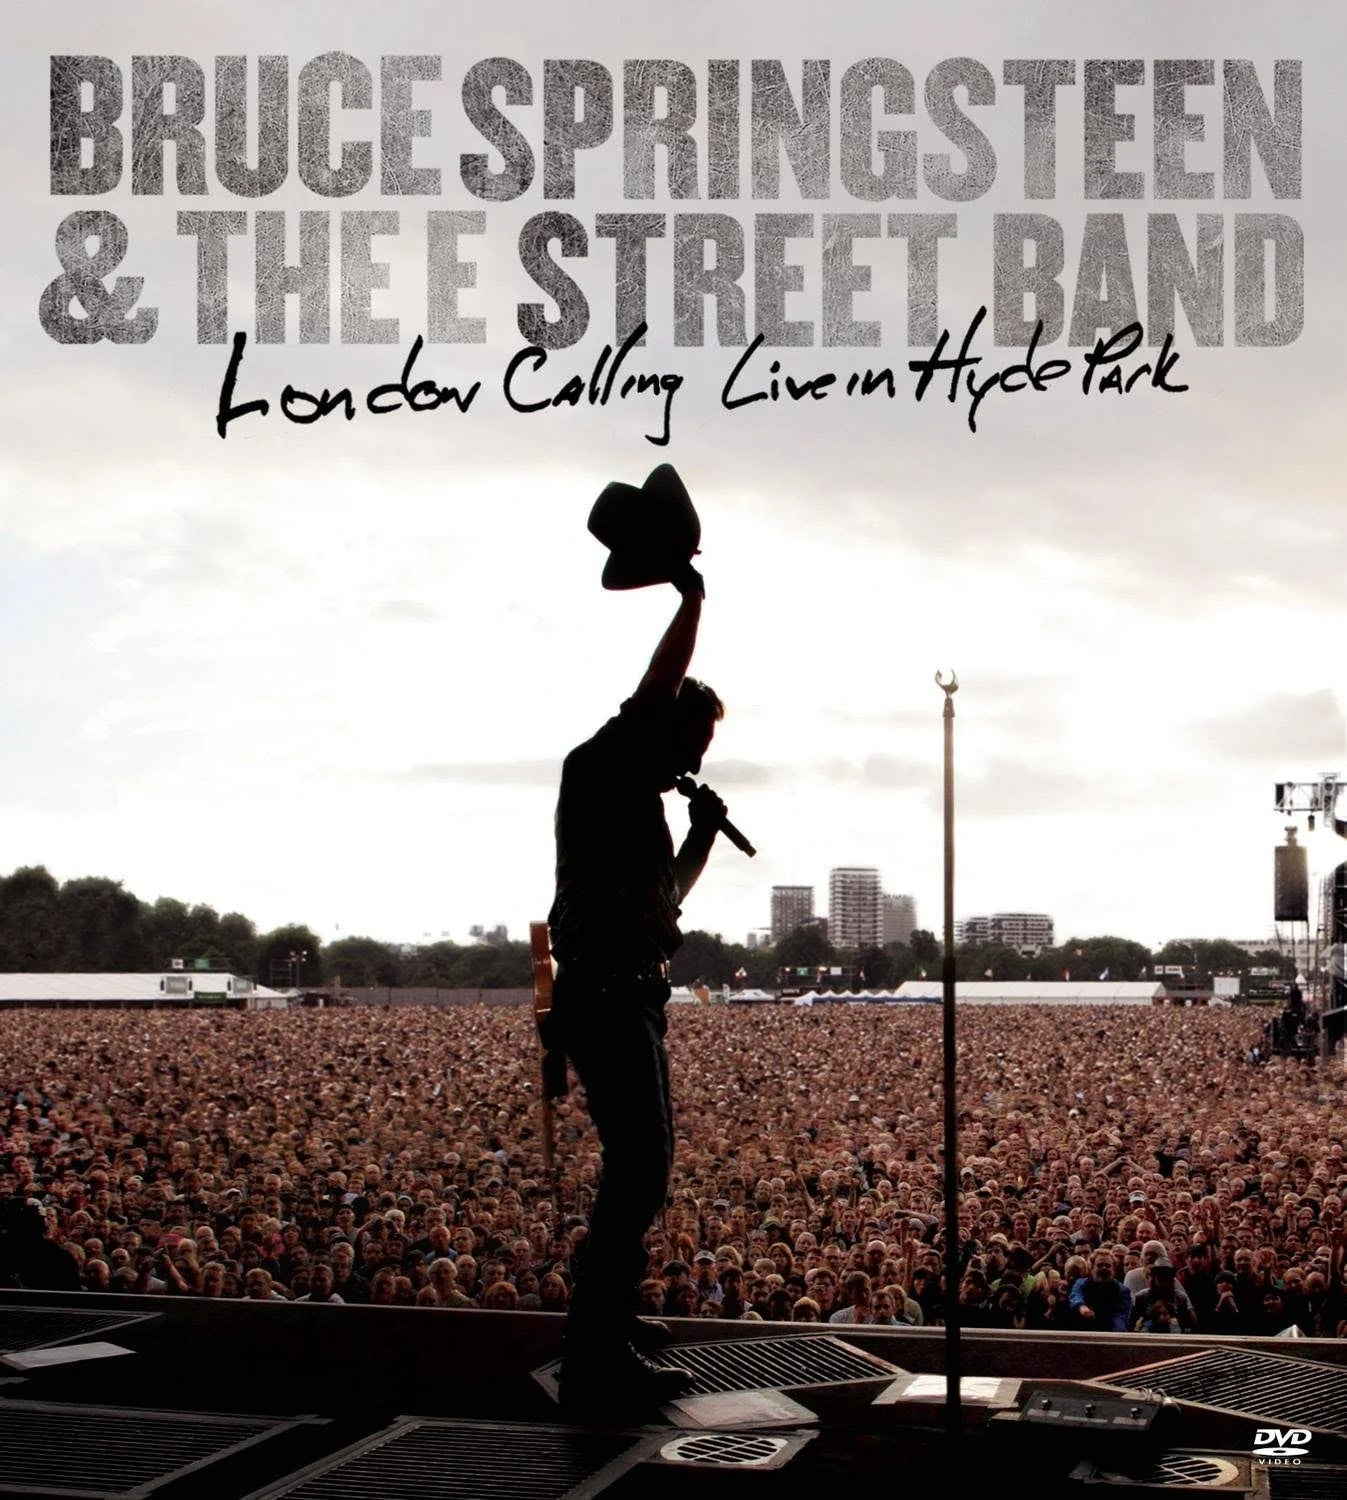 Bruce Springsteen & The E Street Band - London Calling - Live in Hyde Park - DVD